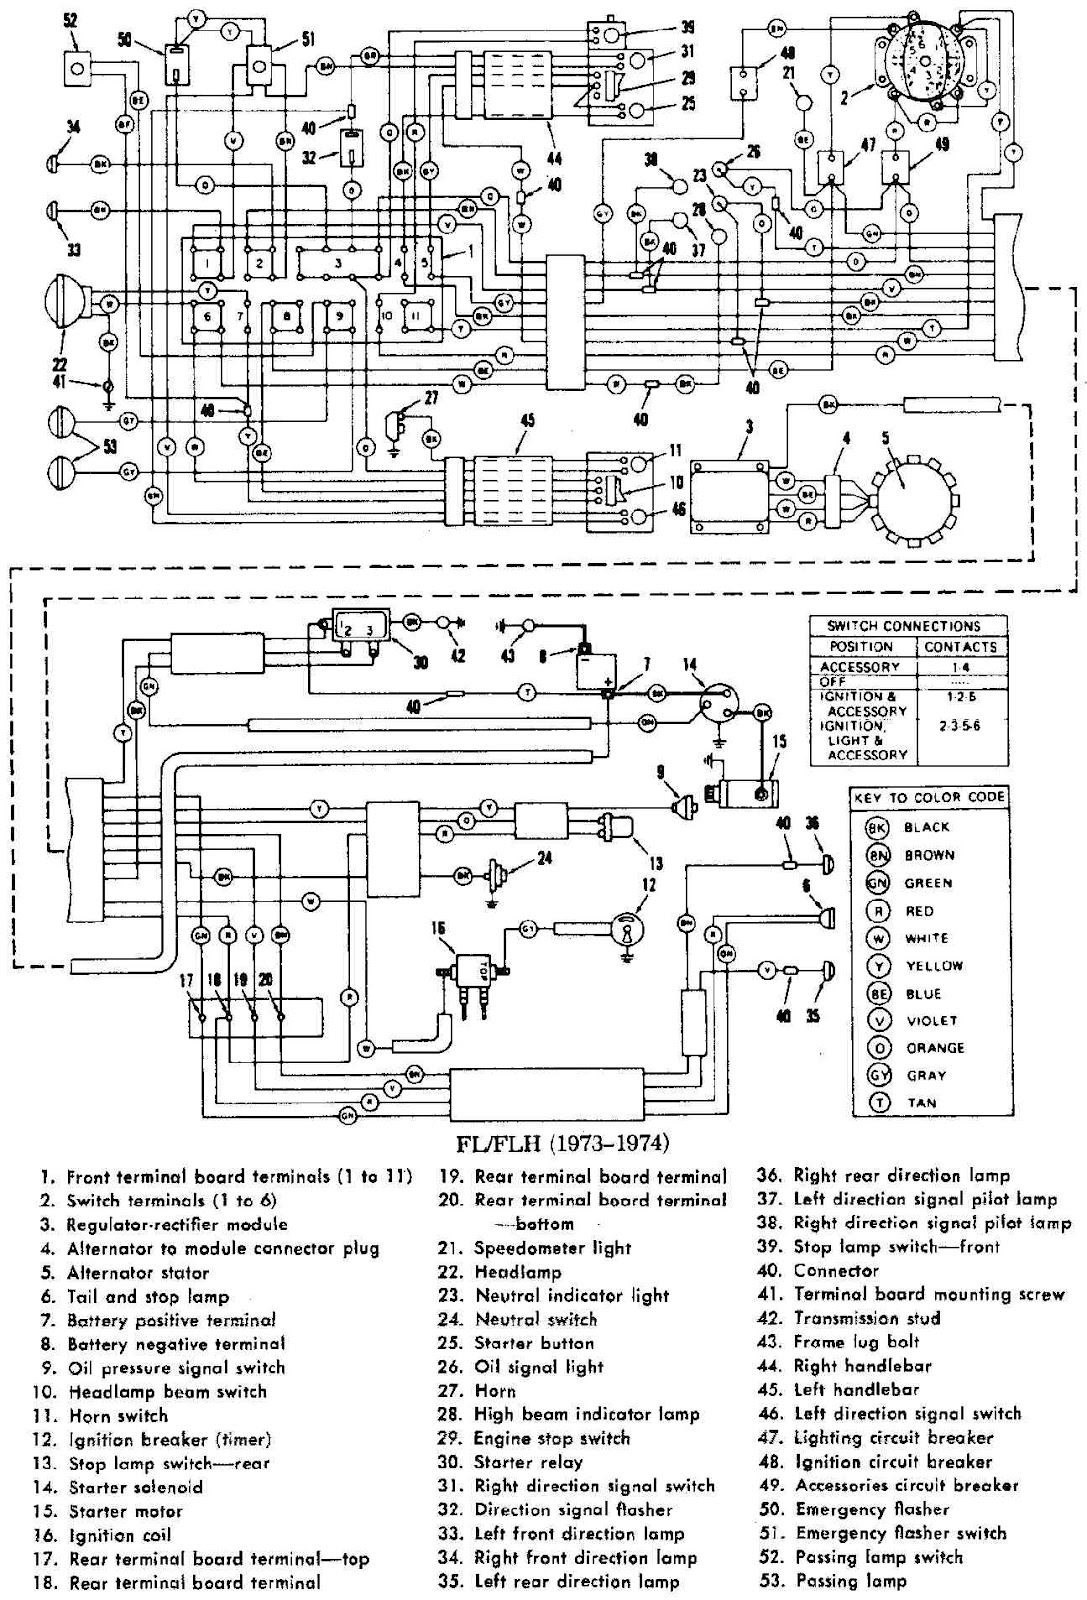 Harley 6 Pole Wiring Diagram - Bho.zaislunamai.uk • on smart car diagrams, troubleshooting diagrams, internet of things diagrams, honda motorcycle repair diagrams, switch diagrams, lighting diagrams, gmc fuse box diagrams, series and parallel circuits diagrams, pinout diagrams, transformer diagrams, motor diagrams, friendship bracelet diagrams, battery diagrams, hvac diagrams, electrical diagrams, snatch block diagrams, sincgars radio configurations diagrams, engine diagrams, electronic circuit diagrams, led circuit diagrams,